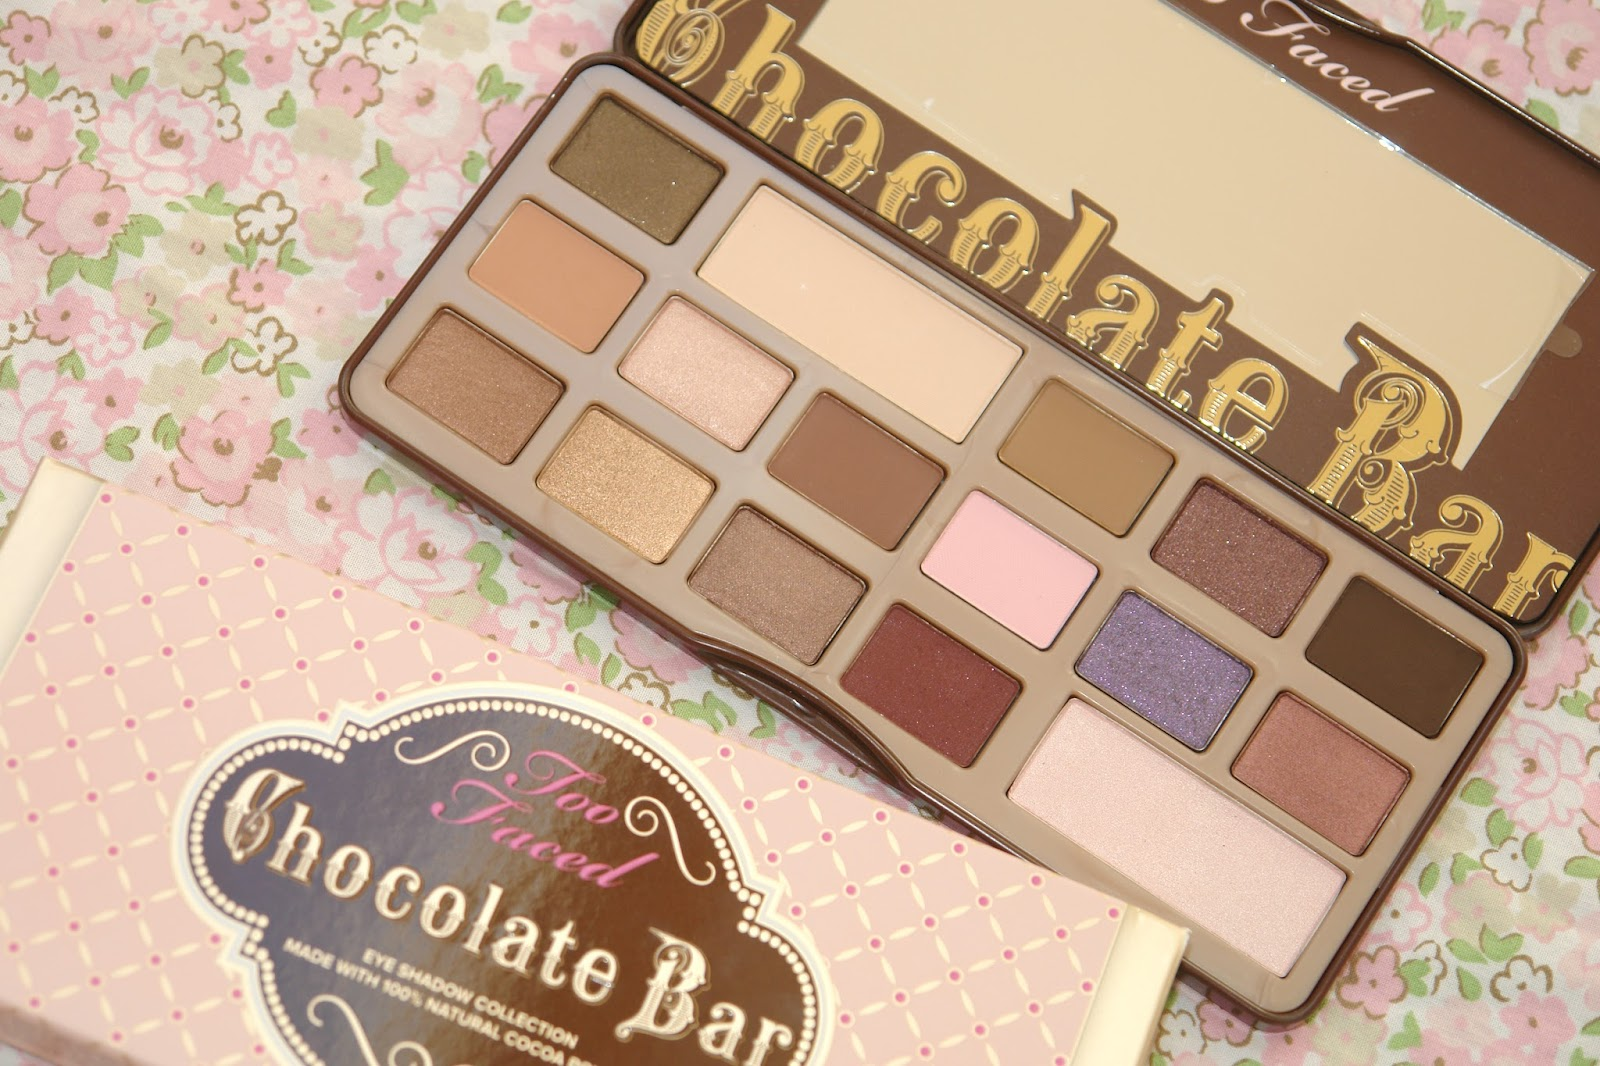 Too Faced Chocolate Bar palette, eye shadows, make up, palette, review, Too Faced, UK beauty blog